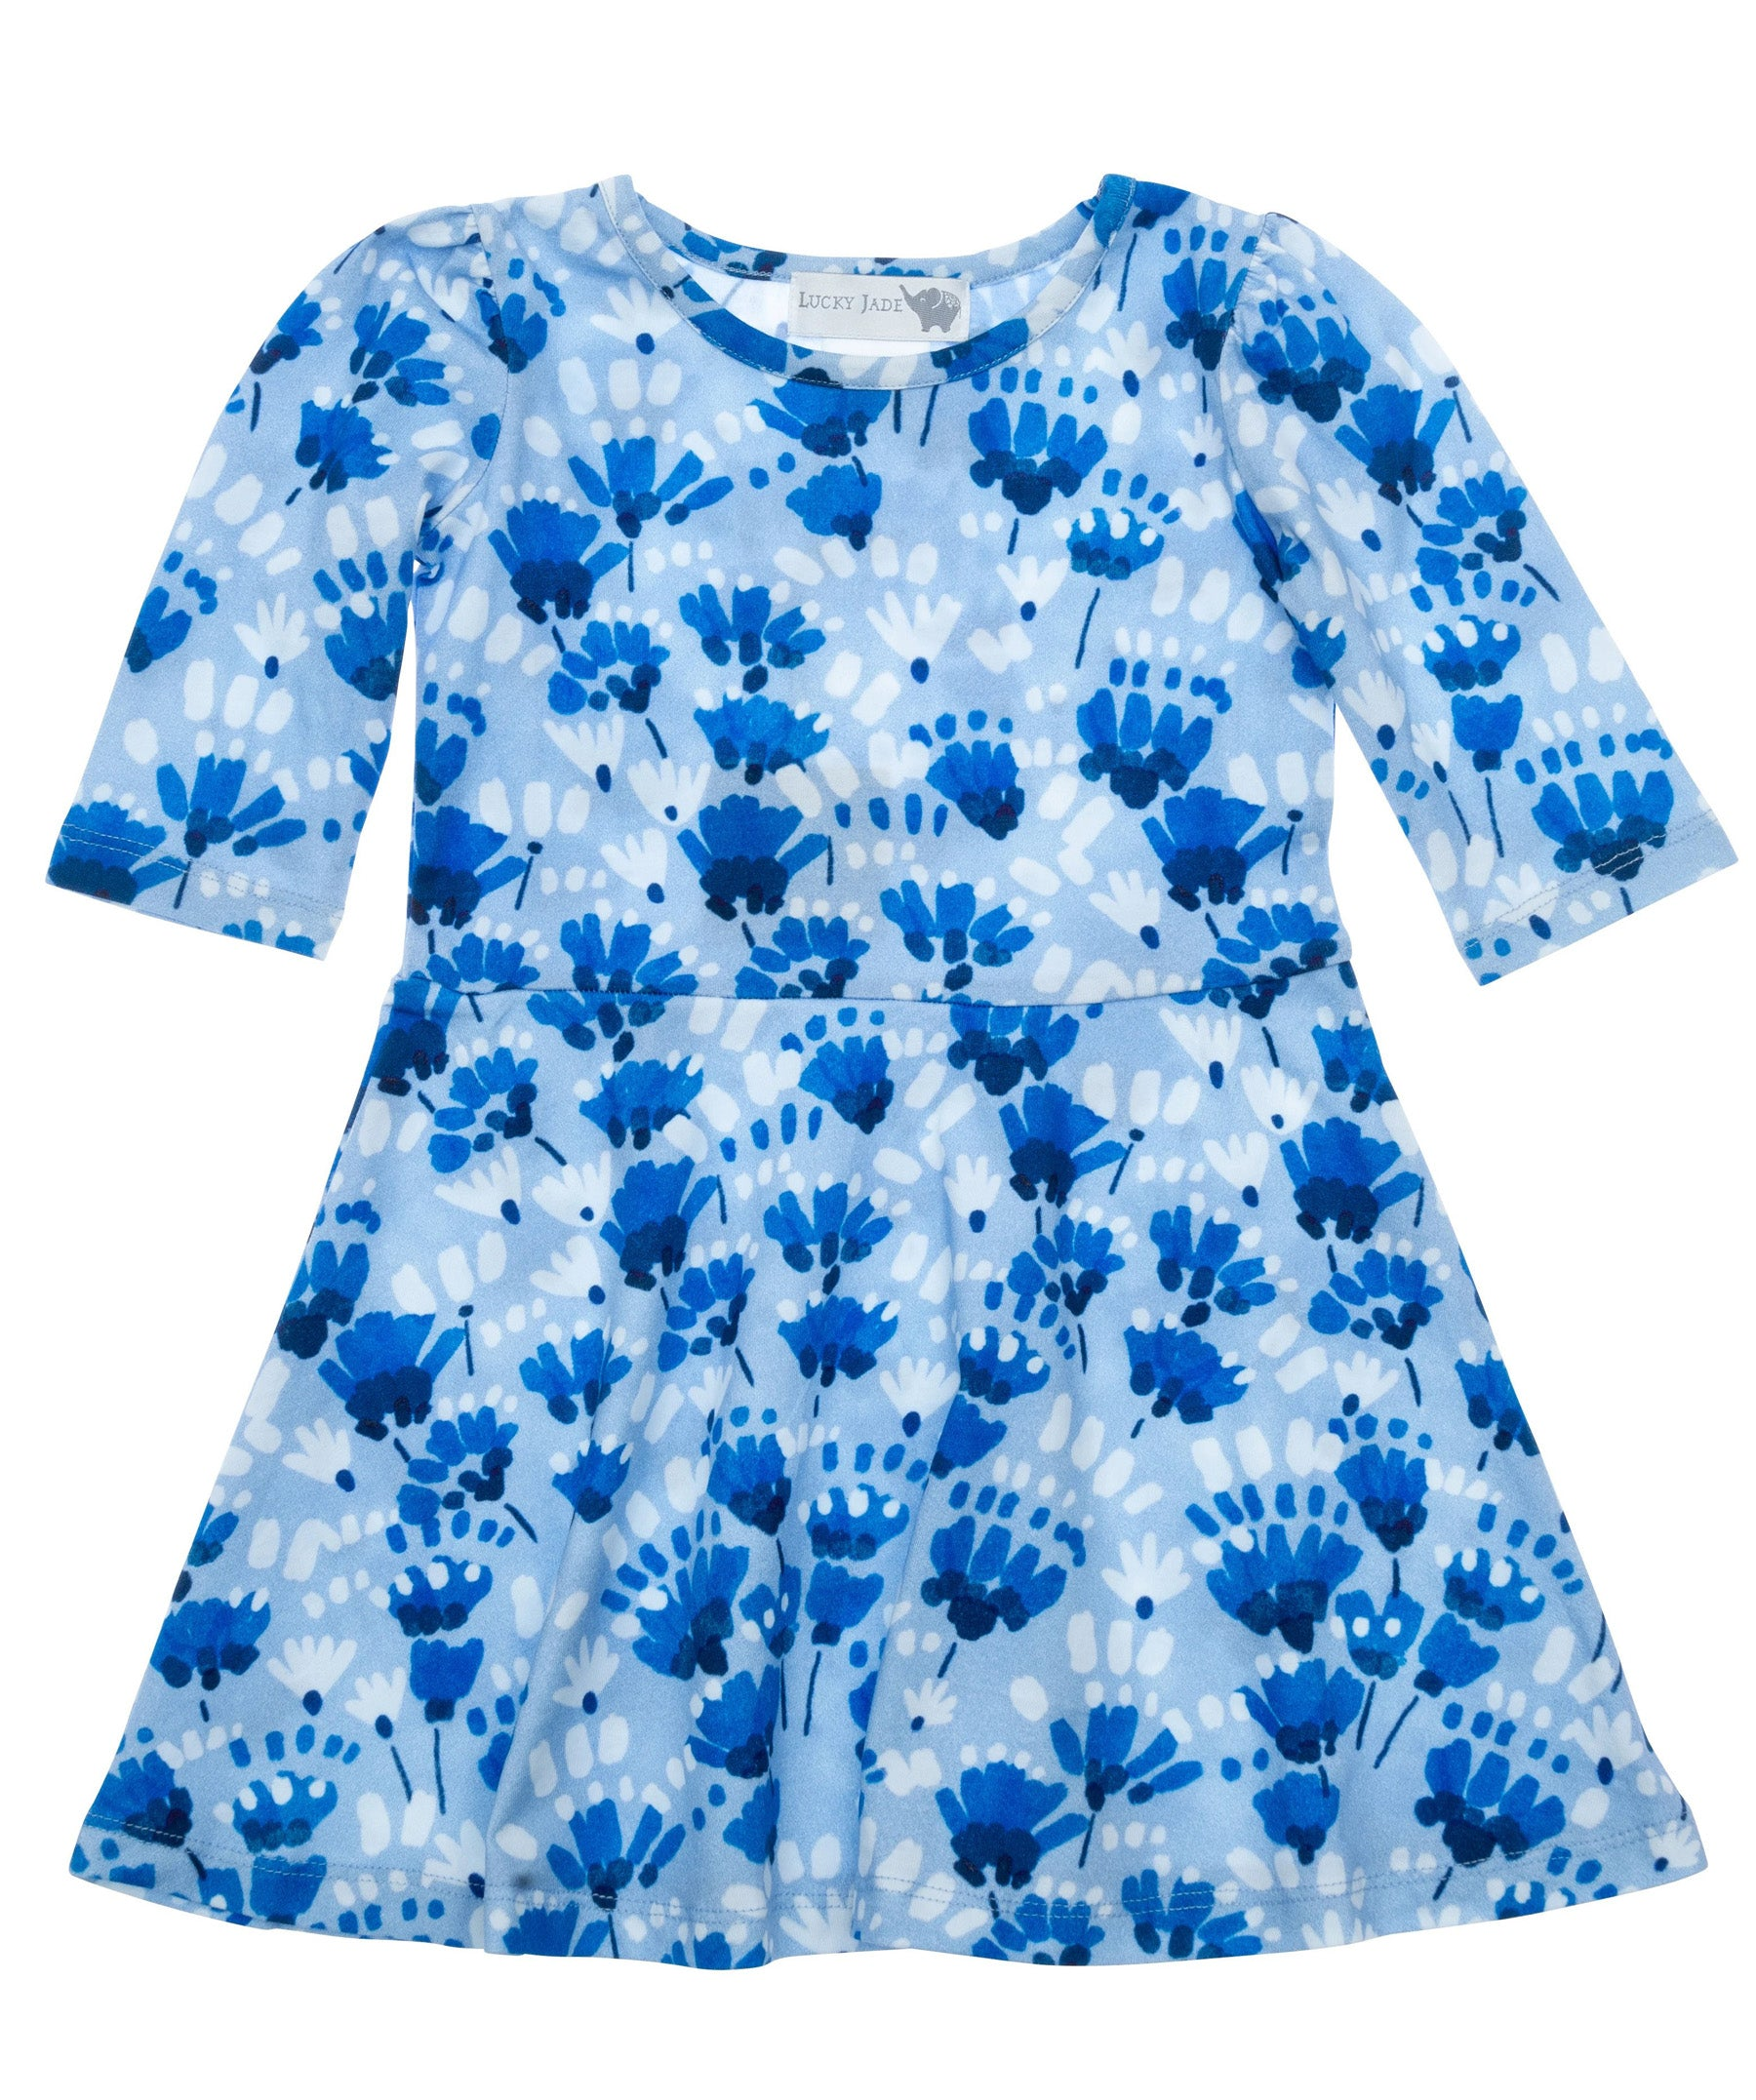 Parisian Flowers Bubbly Dress